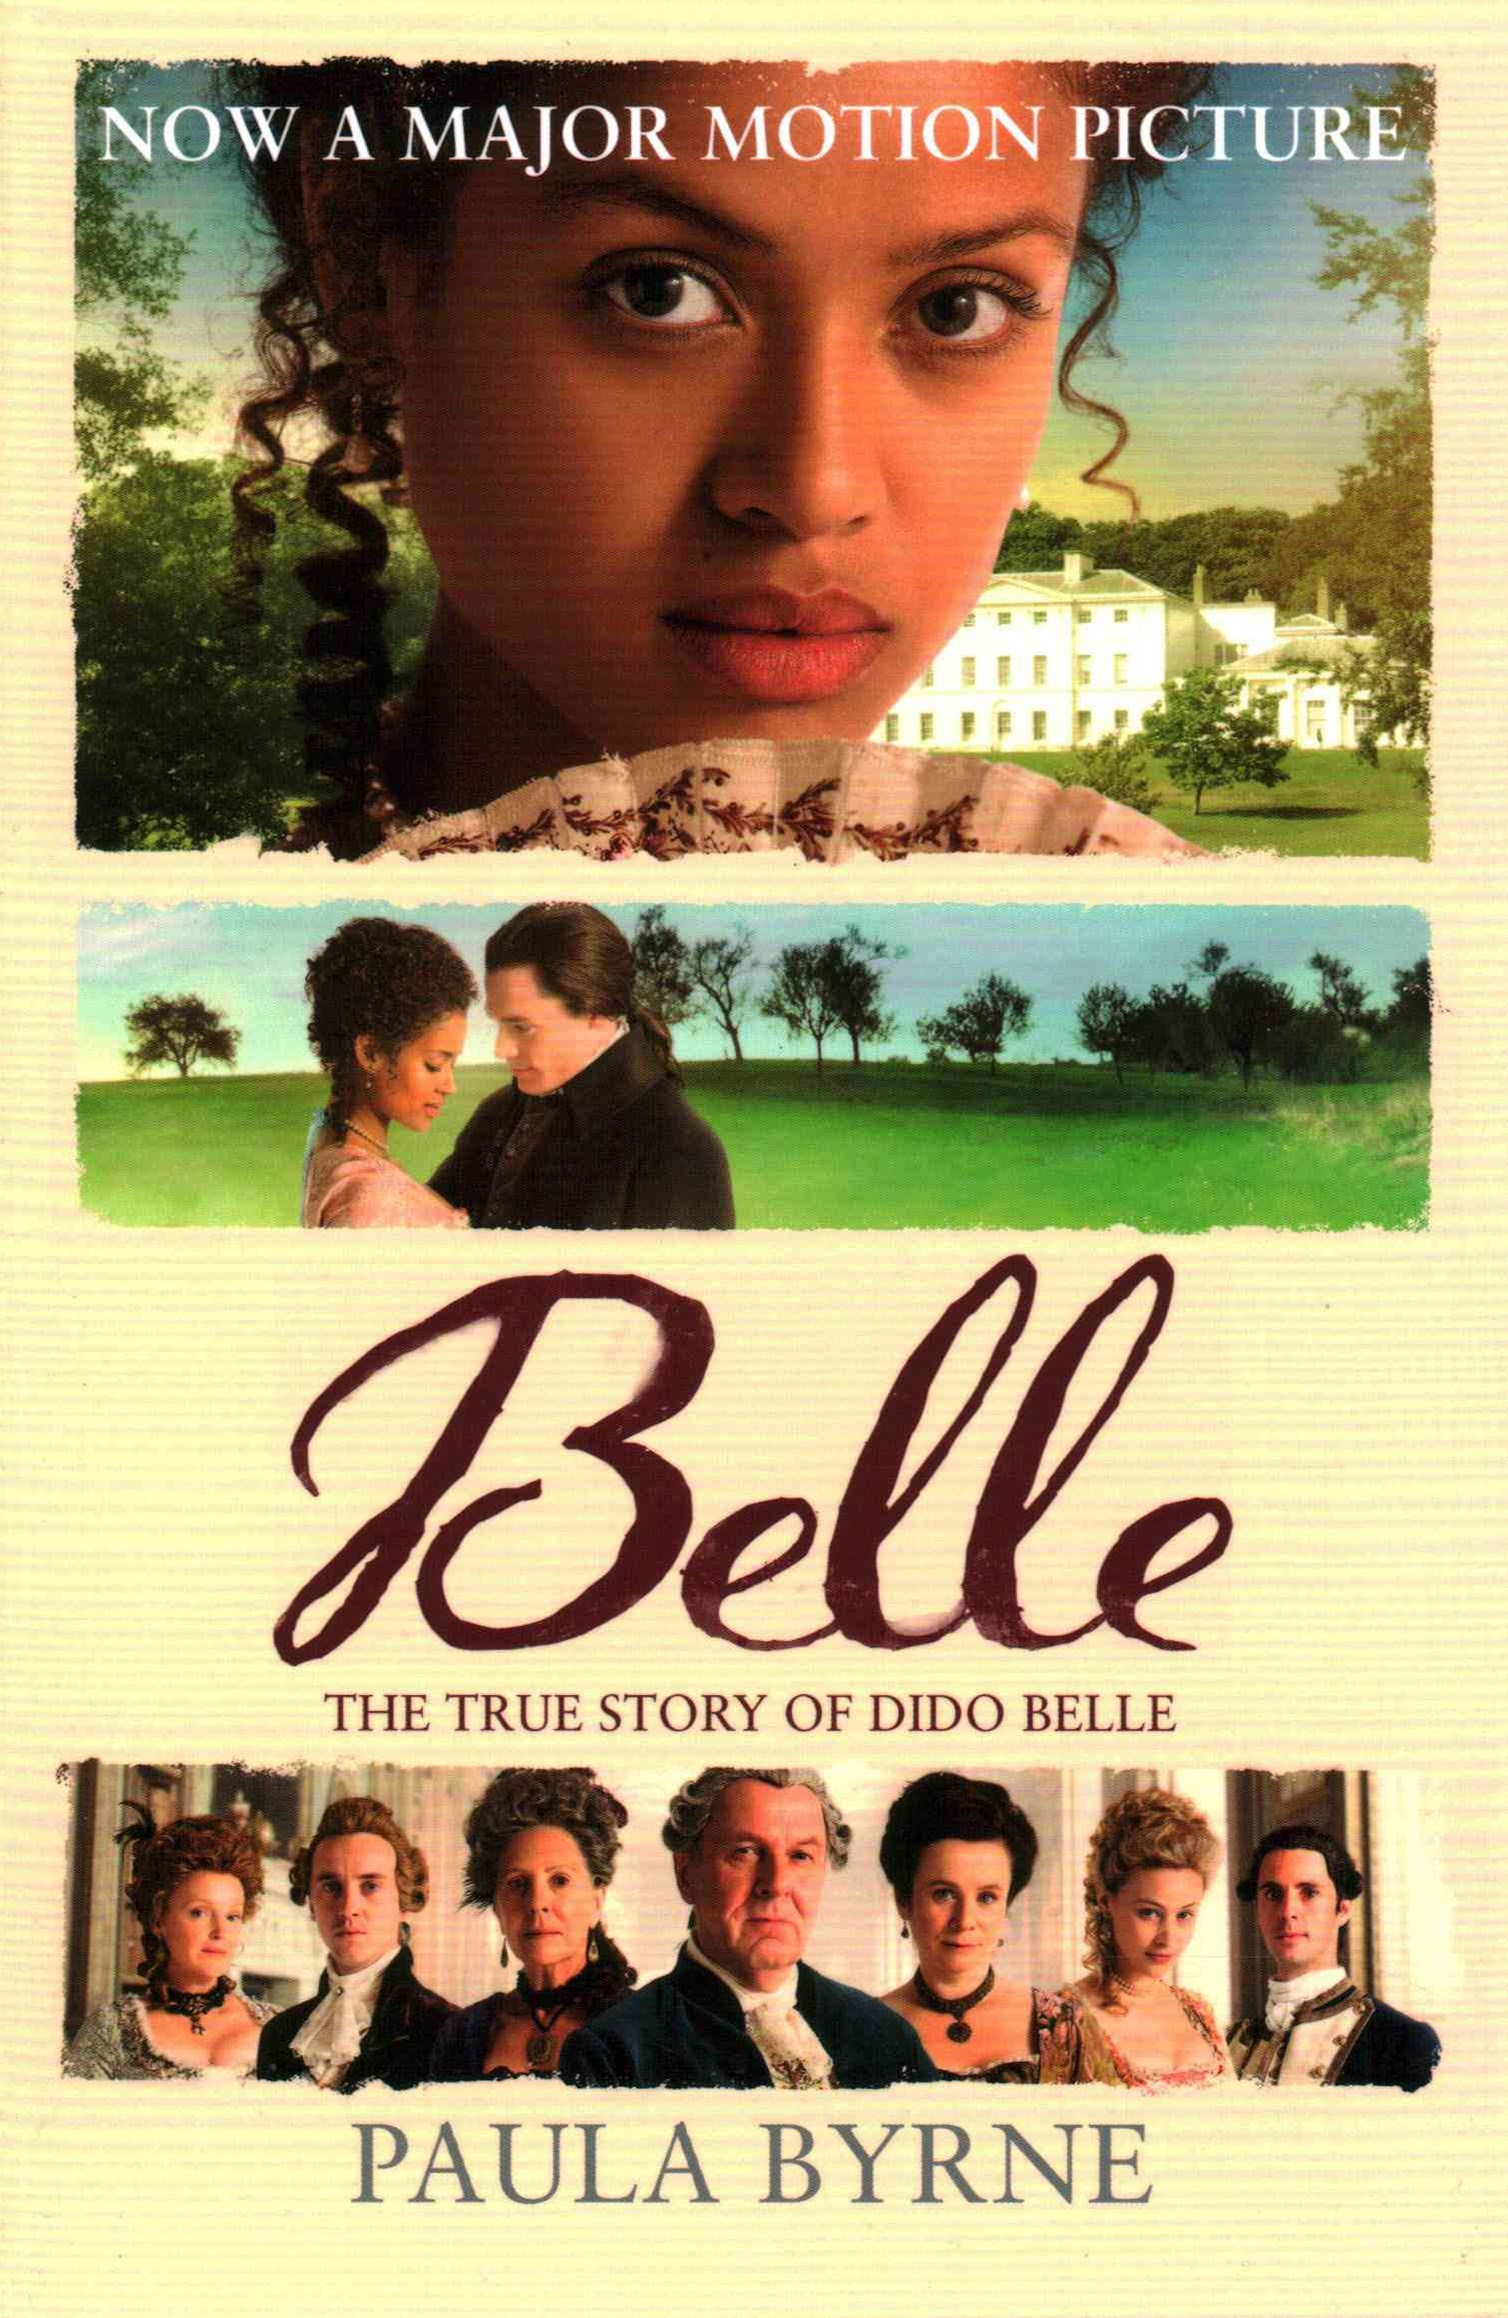 Belle: The True Story of Dido Belle [Film tie-in edition]